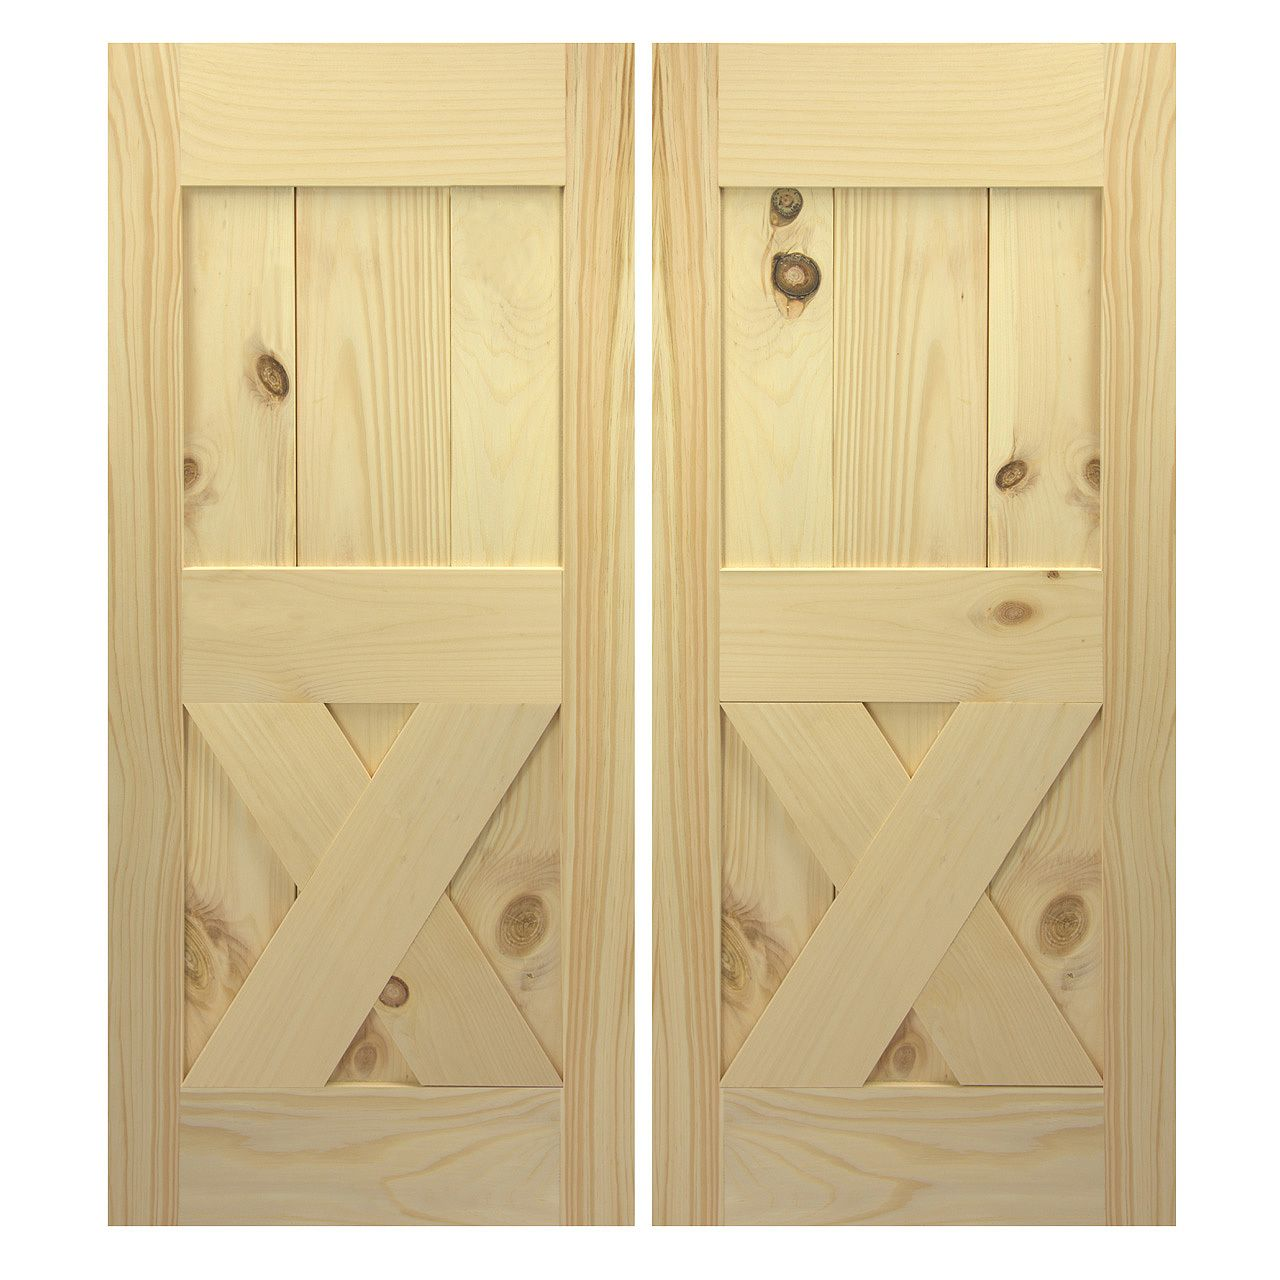 Single X Barn Doors Interior Barn Door Swinging Cafe Doors Barn Style Doors Barn Style Interior Doors Cafe Door